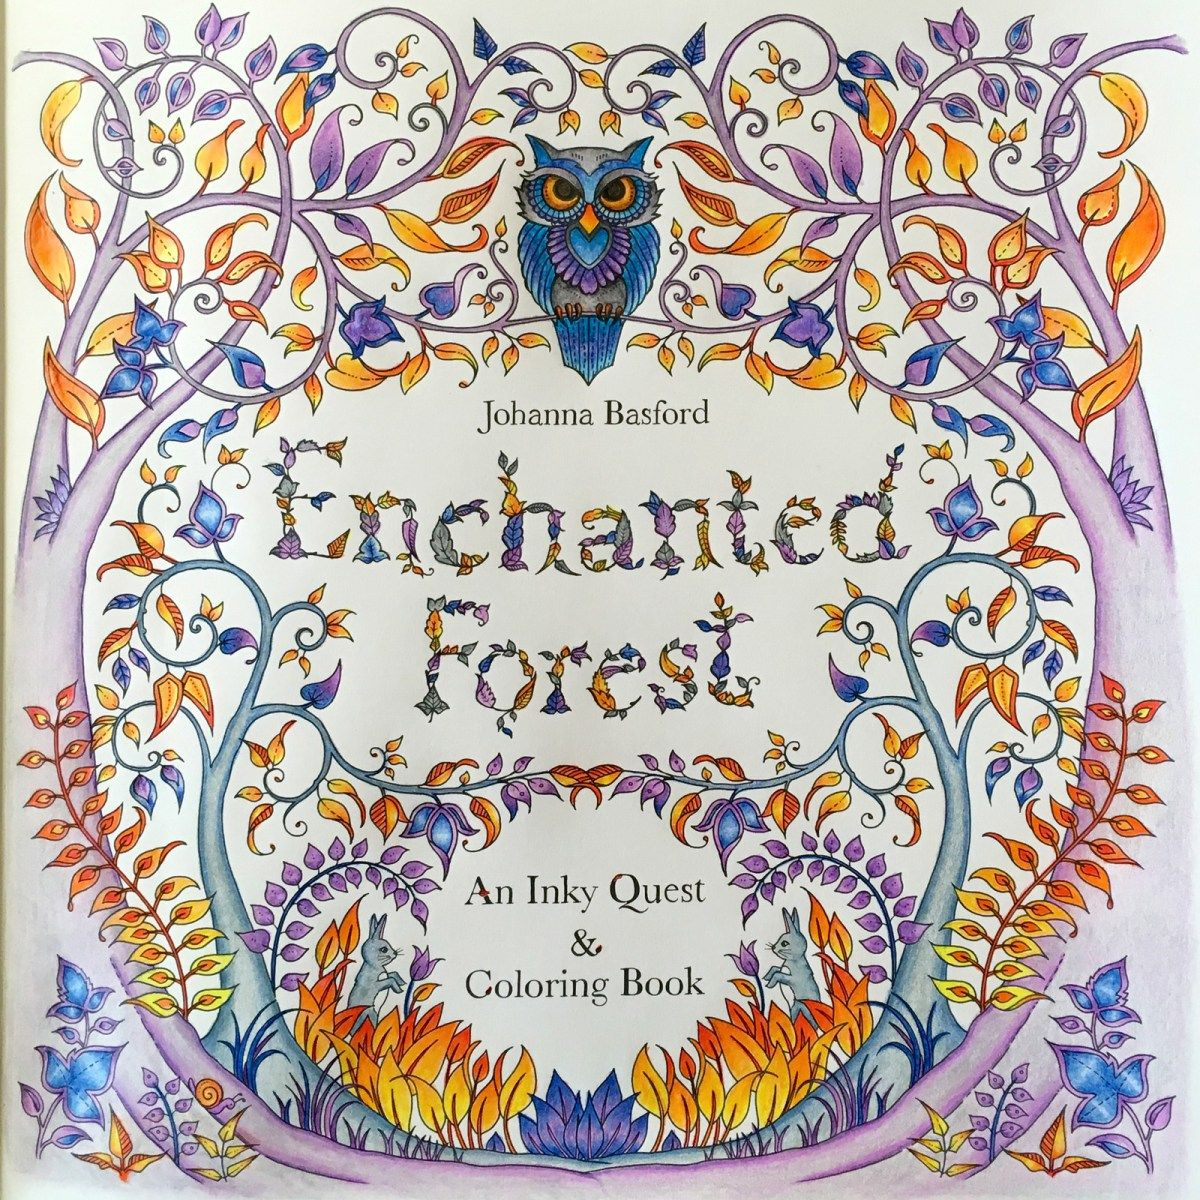 I Resisted For As Long Could But In The End Got On Coloring Book Bandwagon Enchanted Forest An Inky Quest And By Johanna